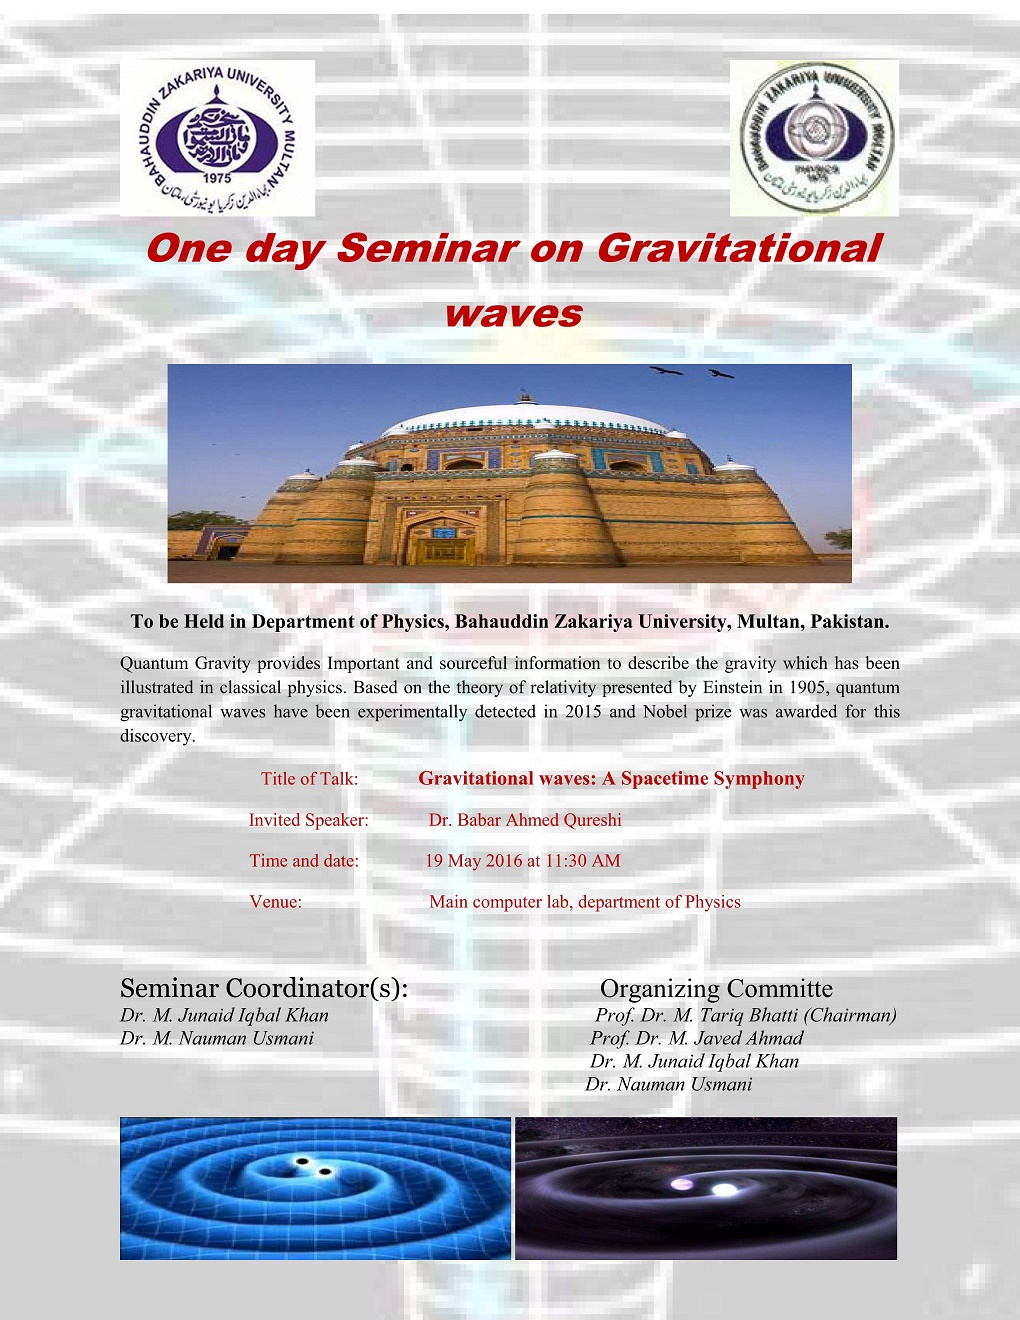 One_day_seminar_on_Gravitational_Waves